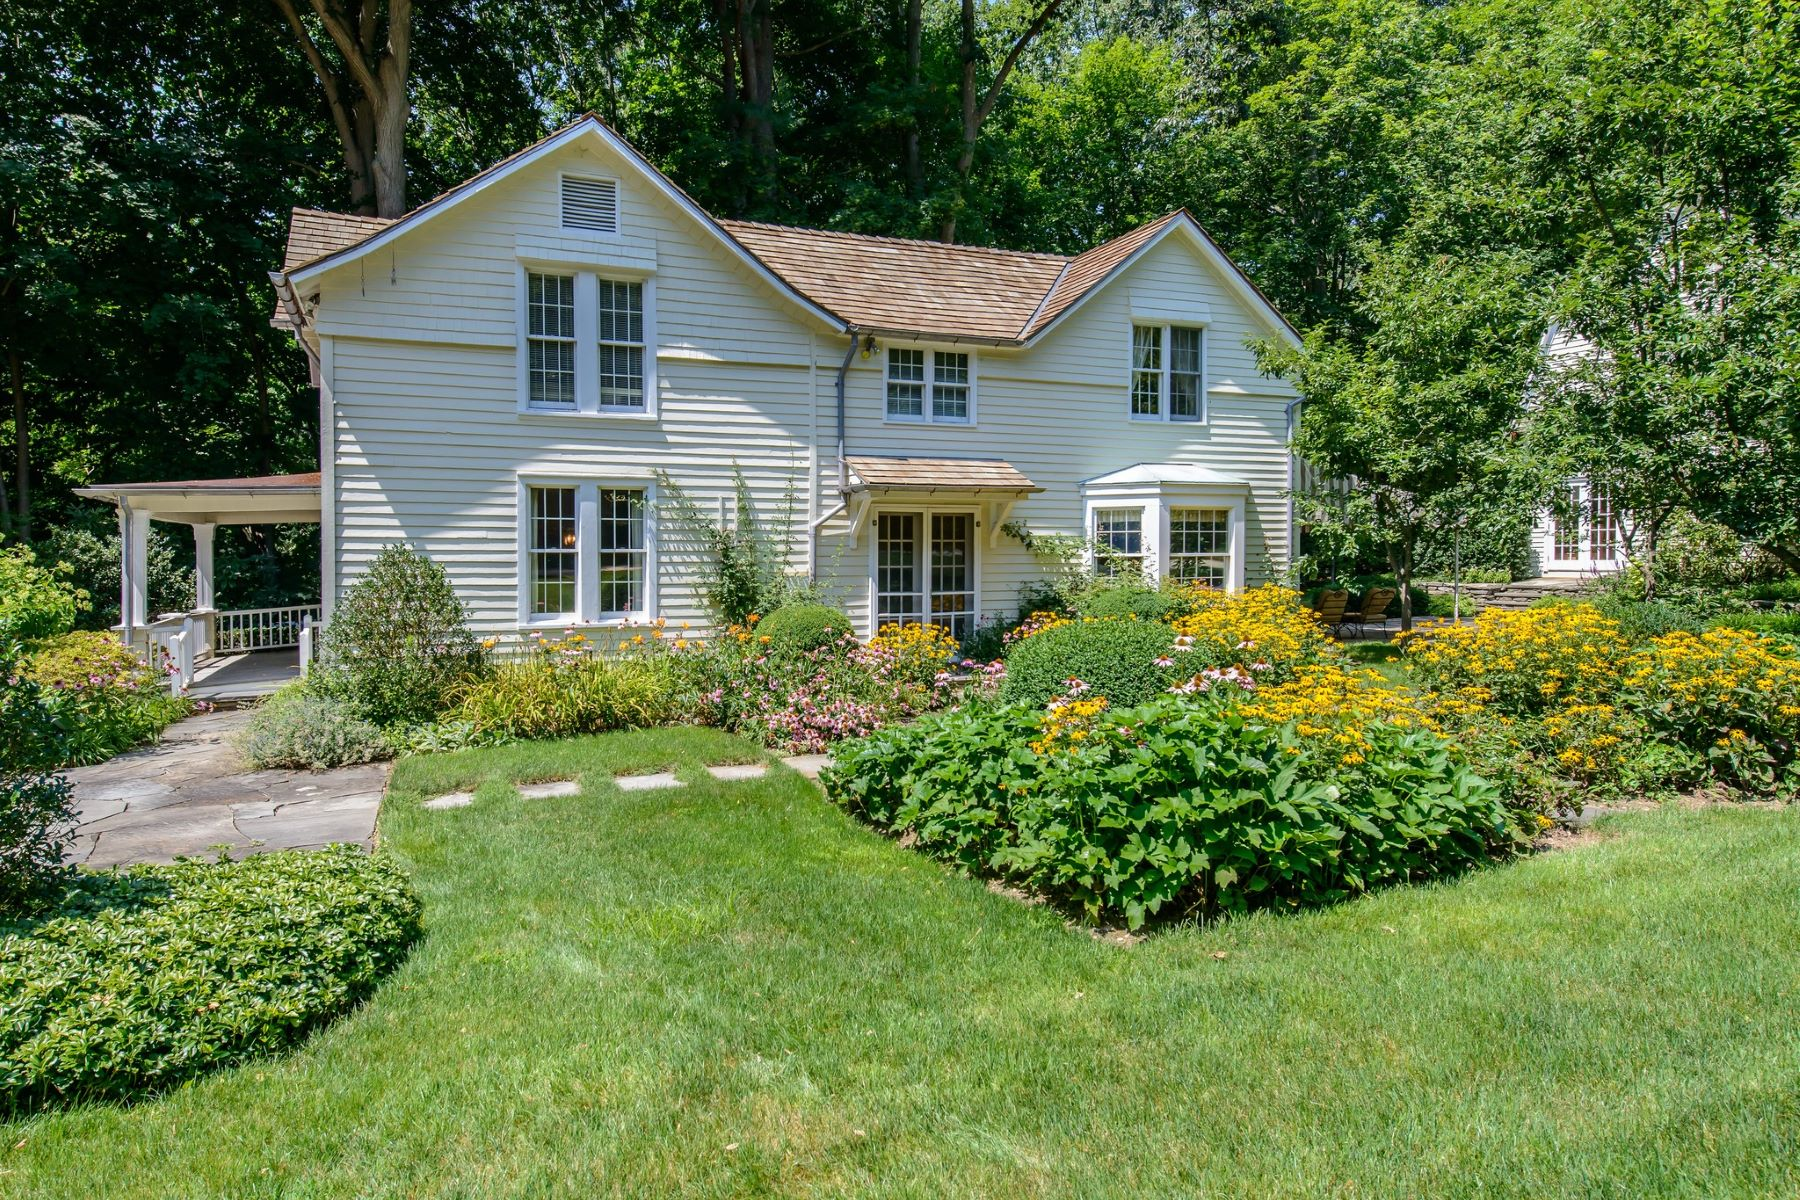 Single Family Homes for Active at Mill Neck 457 Oyster Bay Rd Mill Neck, New York 11765 United States